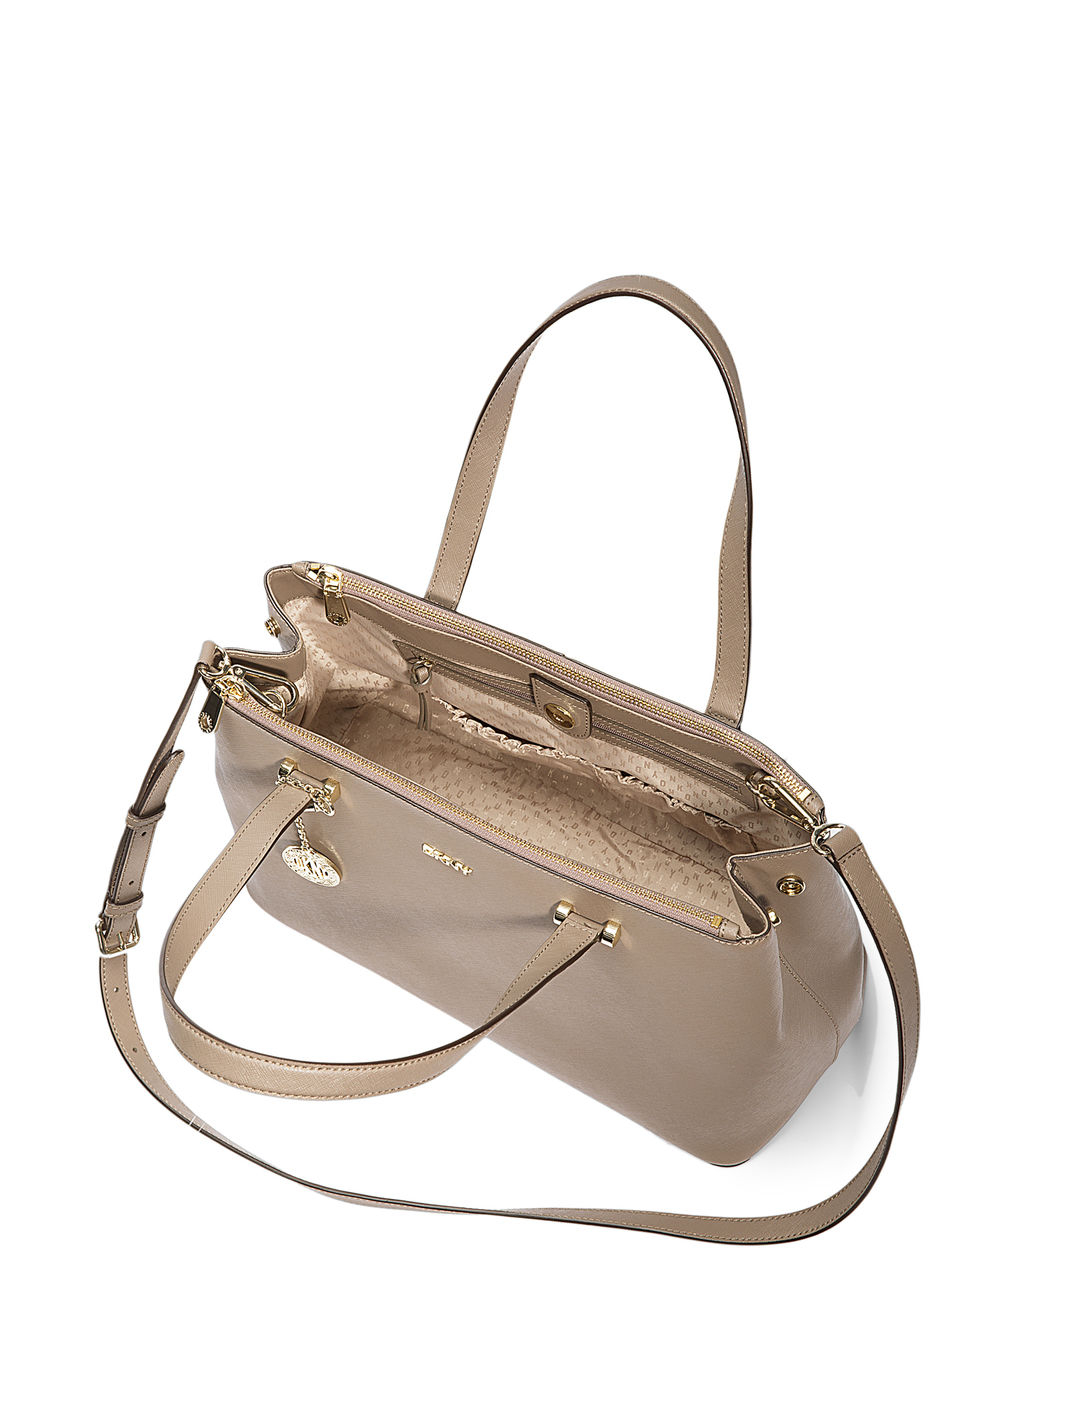 Silver leather tote bag uk - Gallery